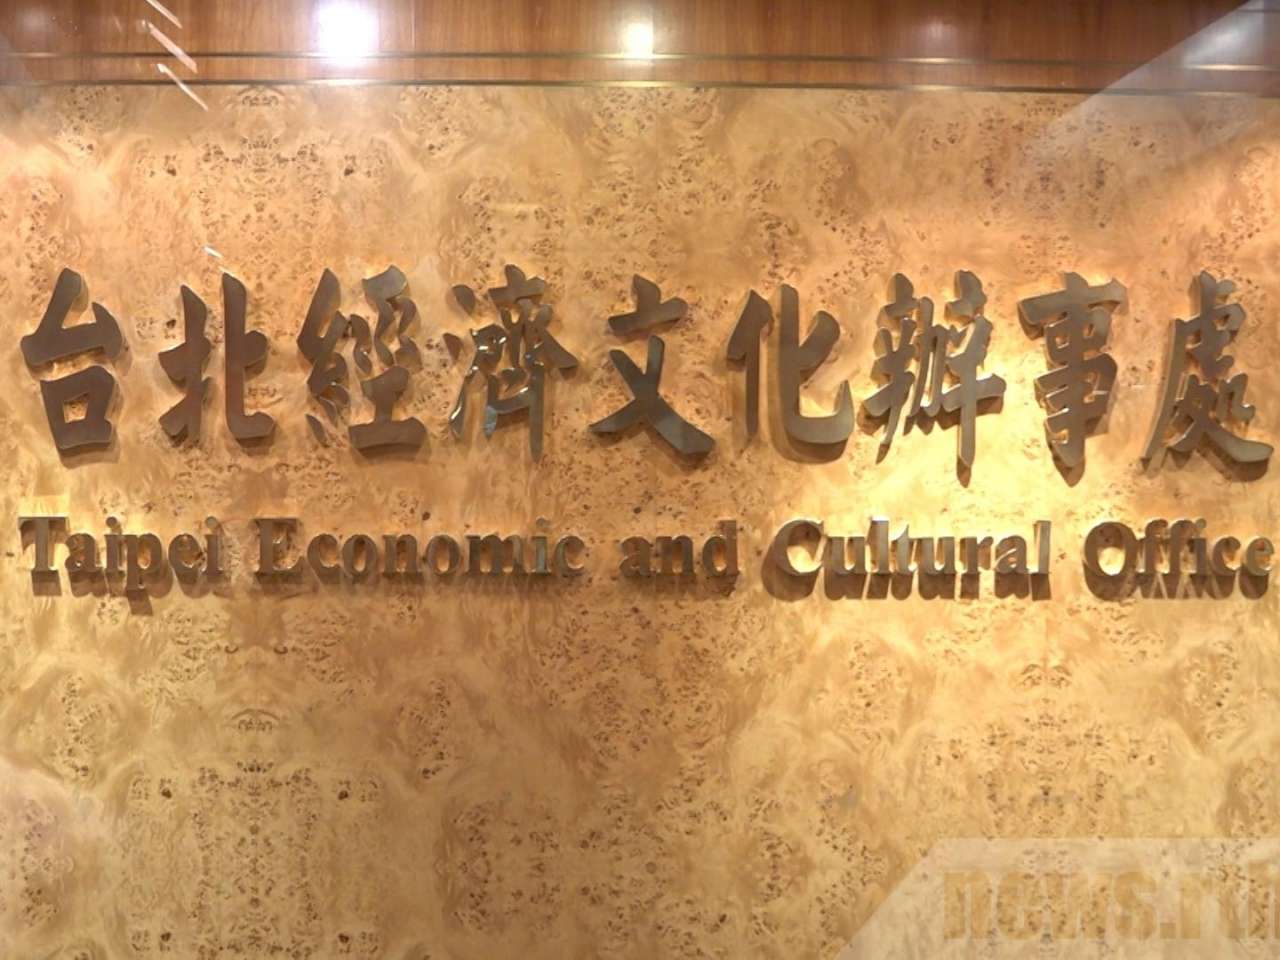 The Taipei Economic and Cultural Office will move some services online while visa and passport services will continue. Photo: RTHK